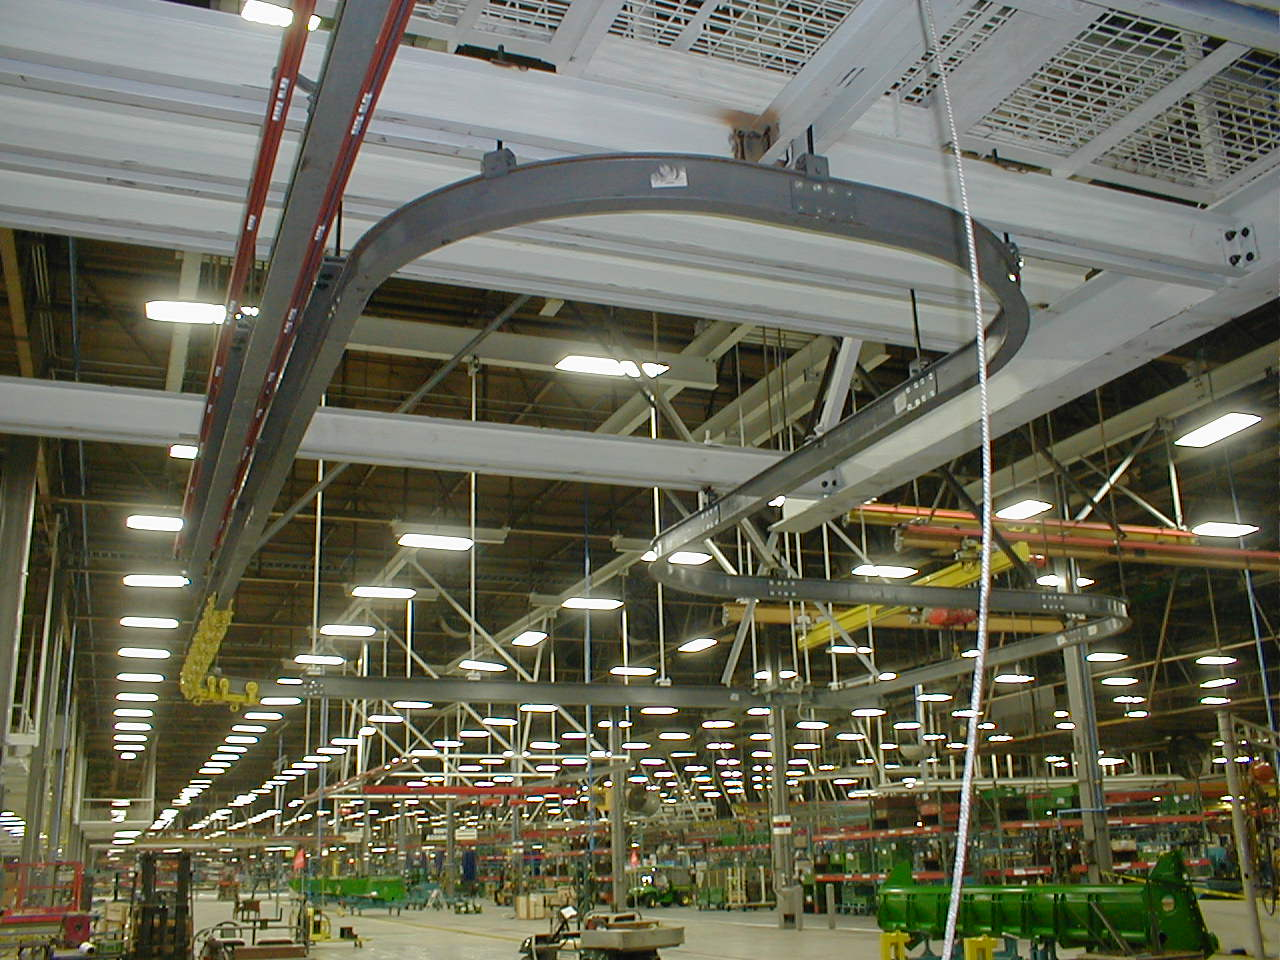 Monorail Systems Afe Crane Overhead Material Handling